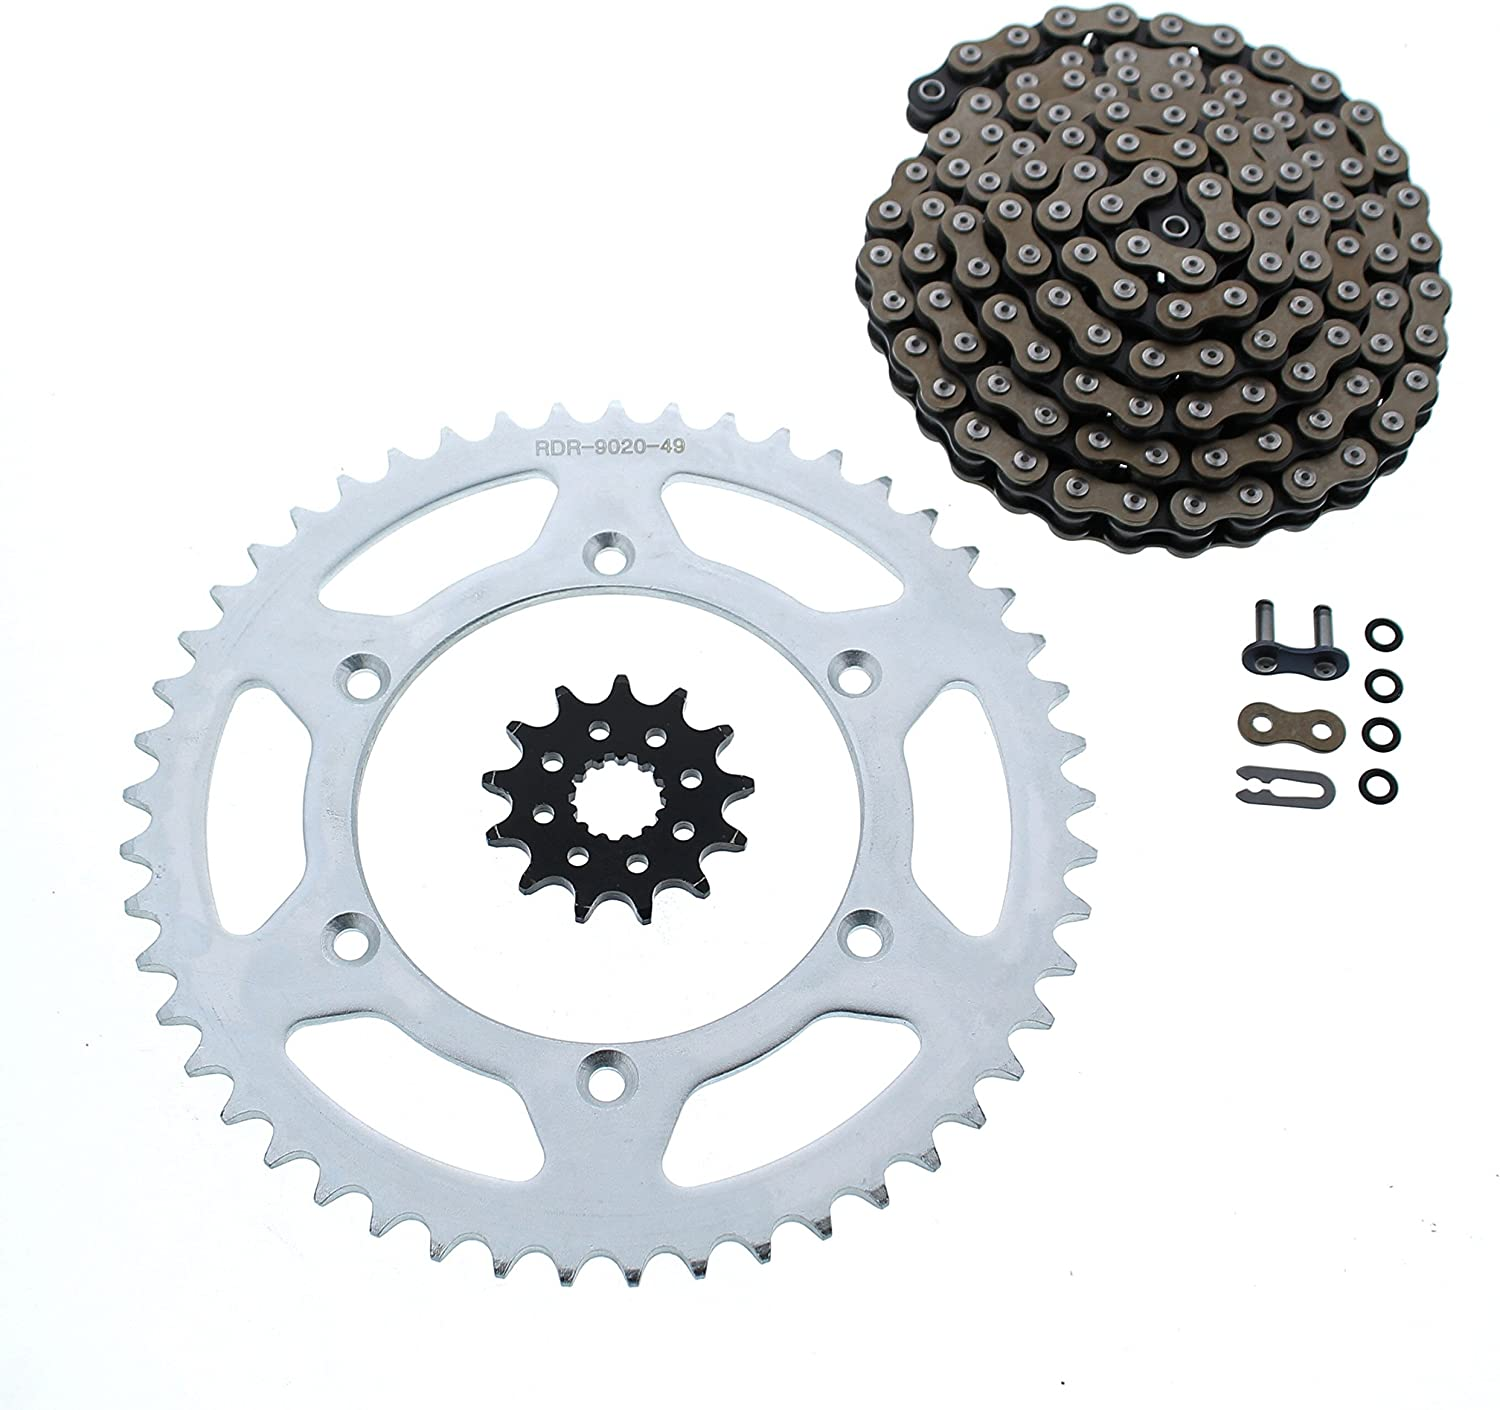 CZ ORH X Ring Chain Daily bargain sale and Sprocket Y 49 Set 13 fits Max 48% OFF 1999-2005 114L